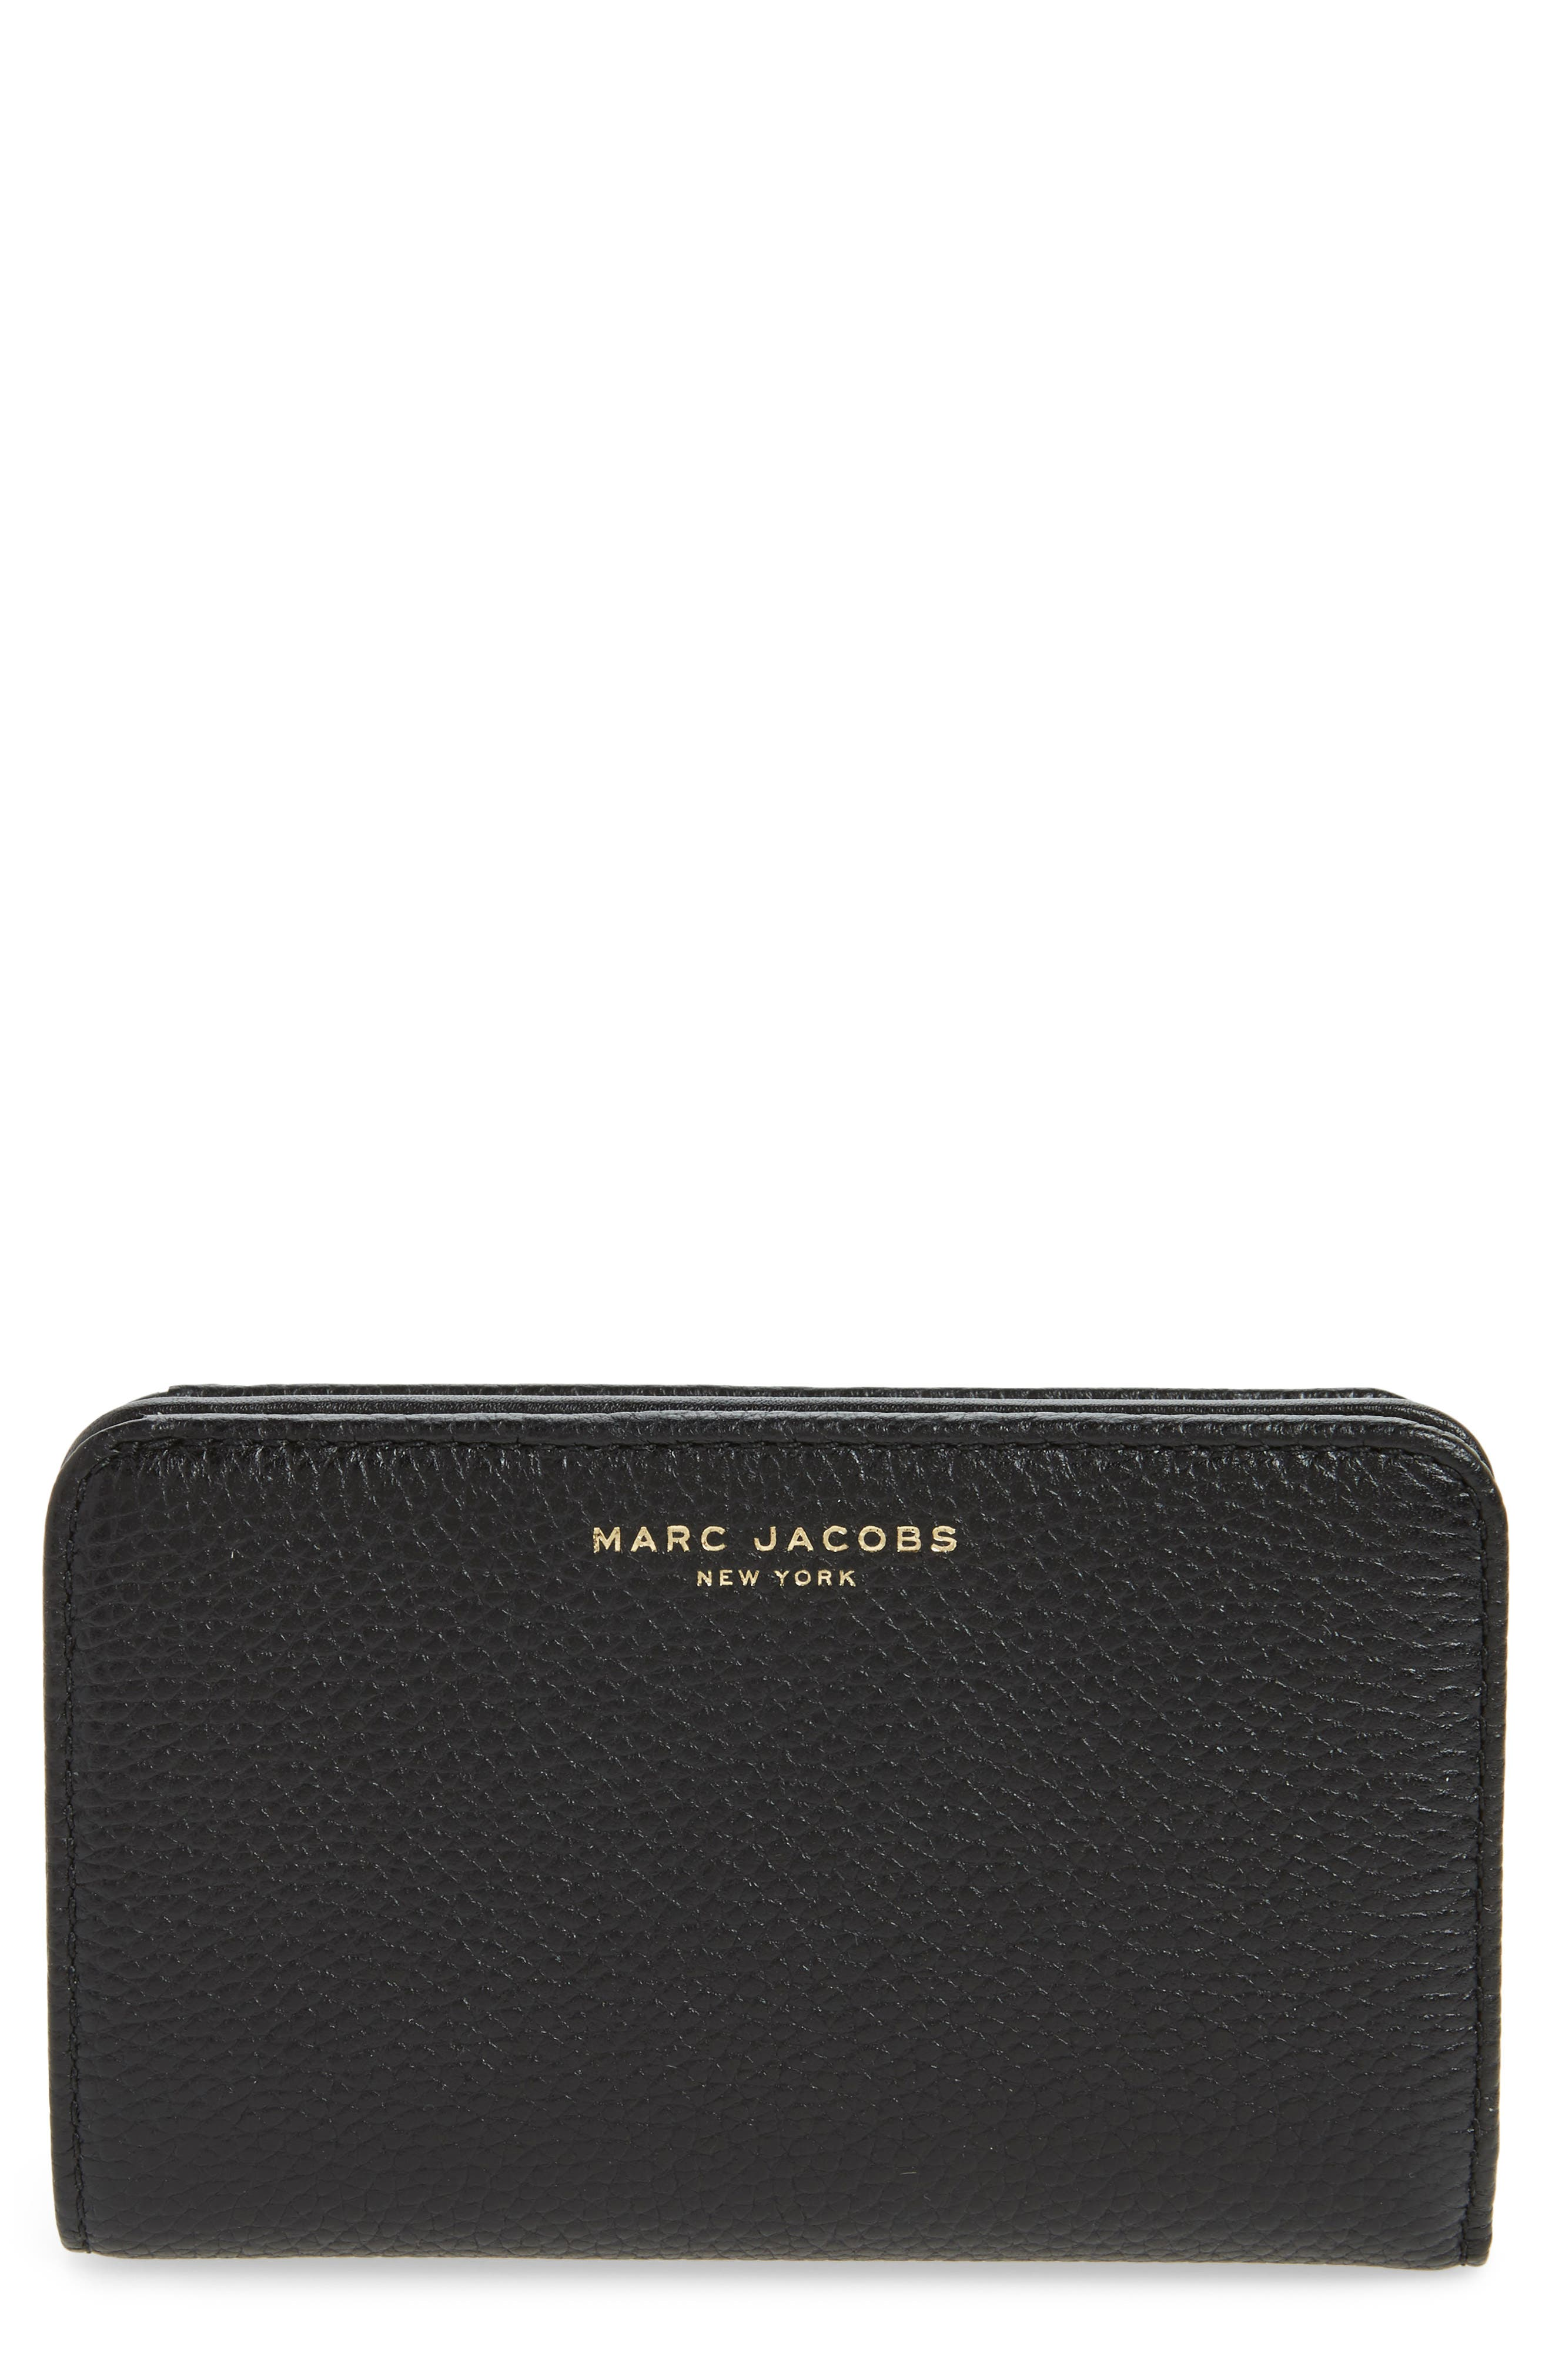 Gotham Compact Leather Wallet,                         Main,                         color, 002